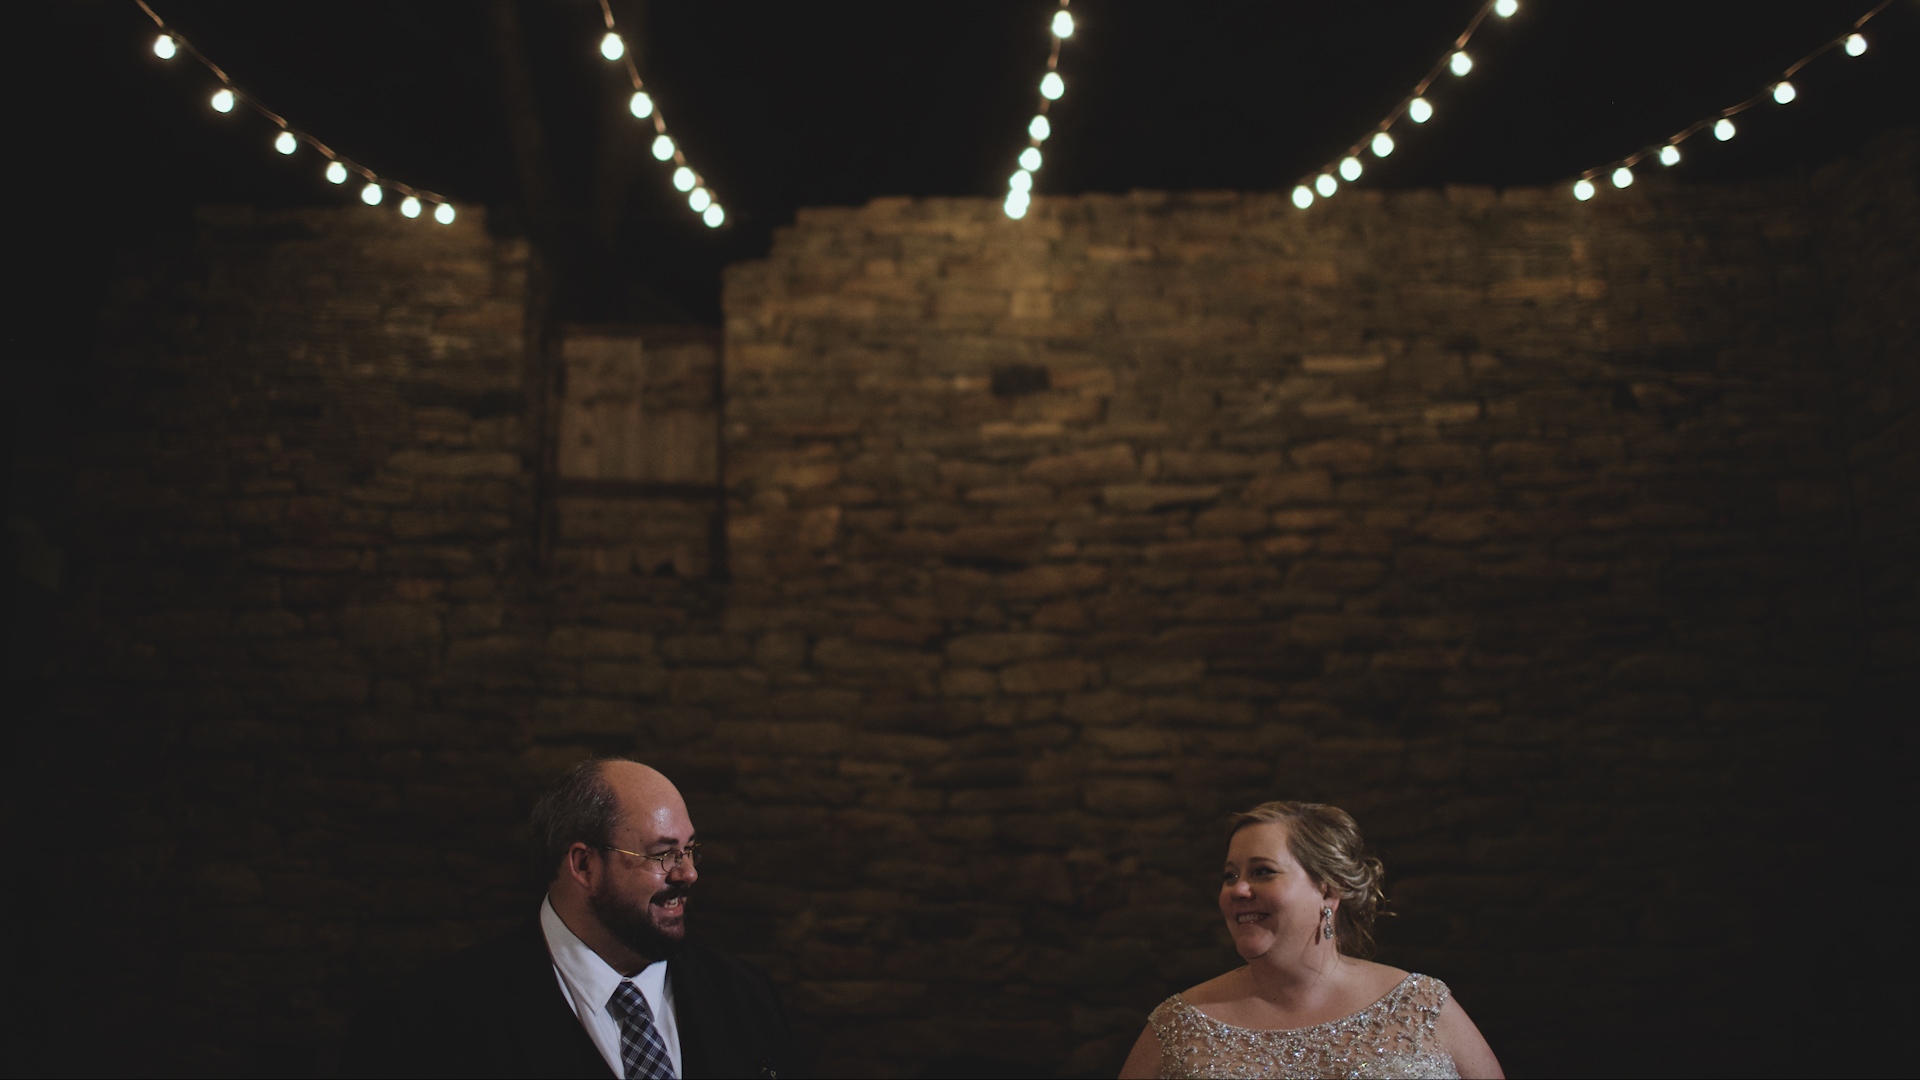 Kate + Noah | Powhatan, Virginia | The Mill at Fine Creek